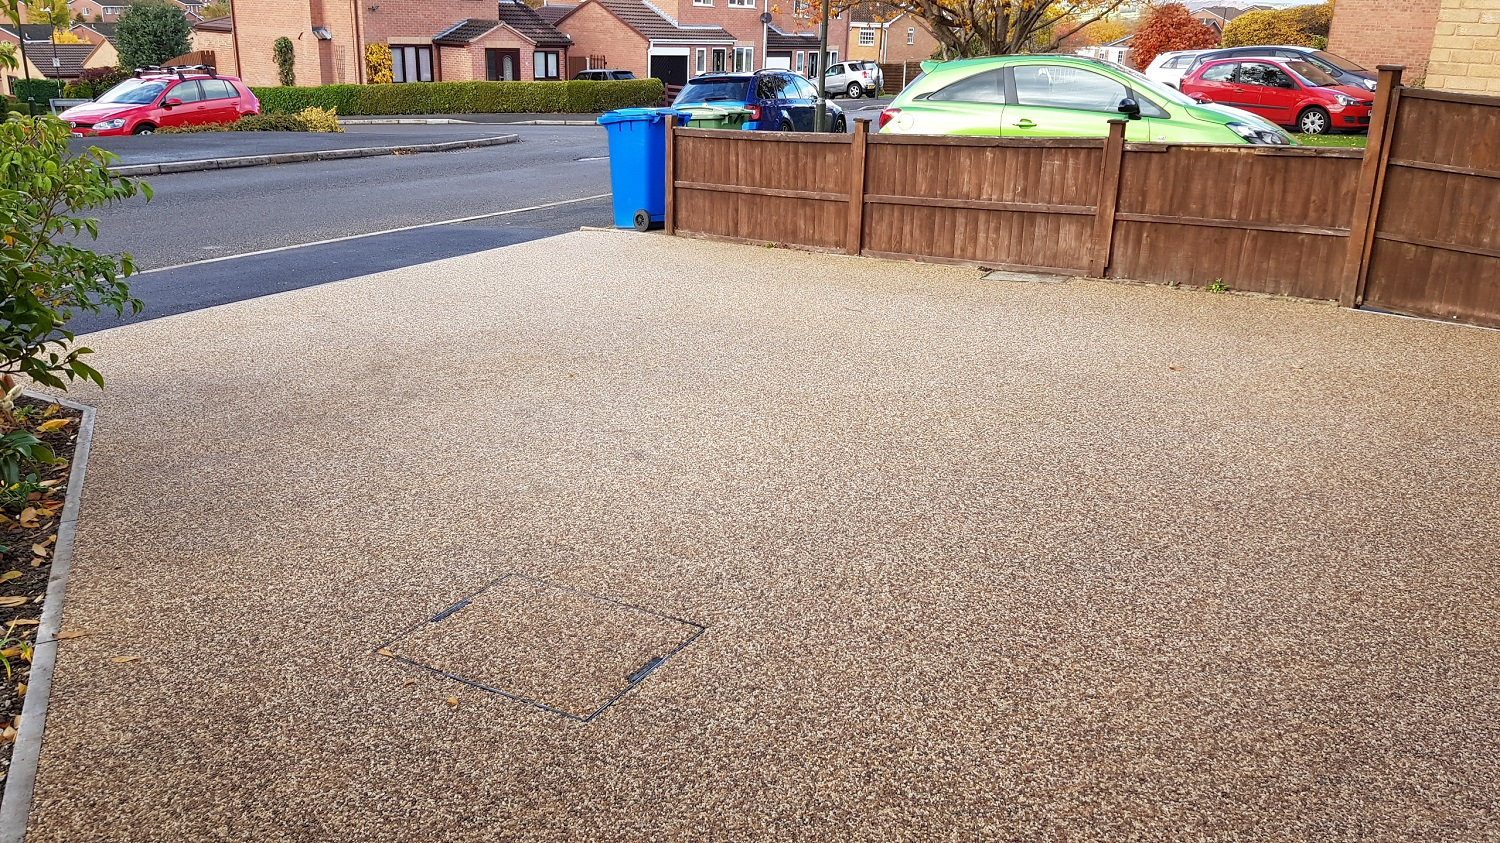 R2 - Chocolate Mix Resin Bound Driveway Surfacing at Walton in Chesterfield